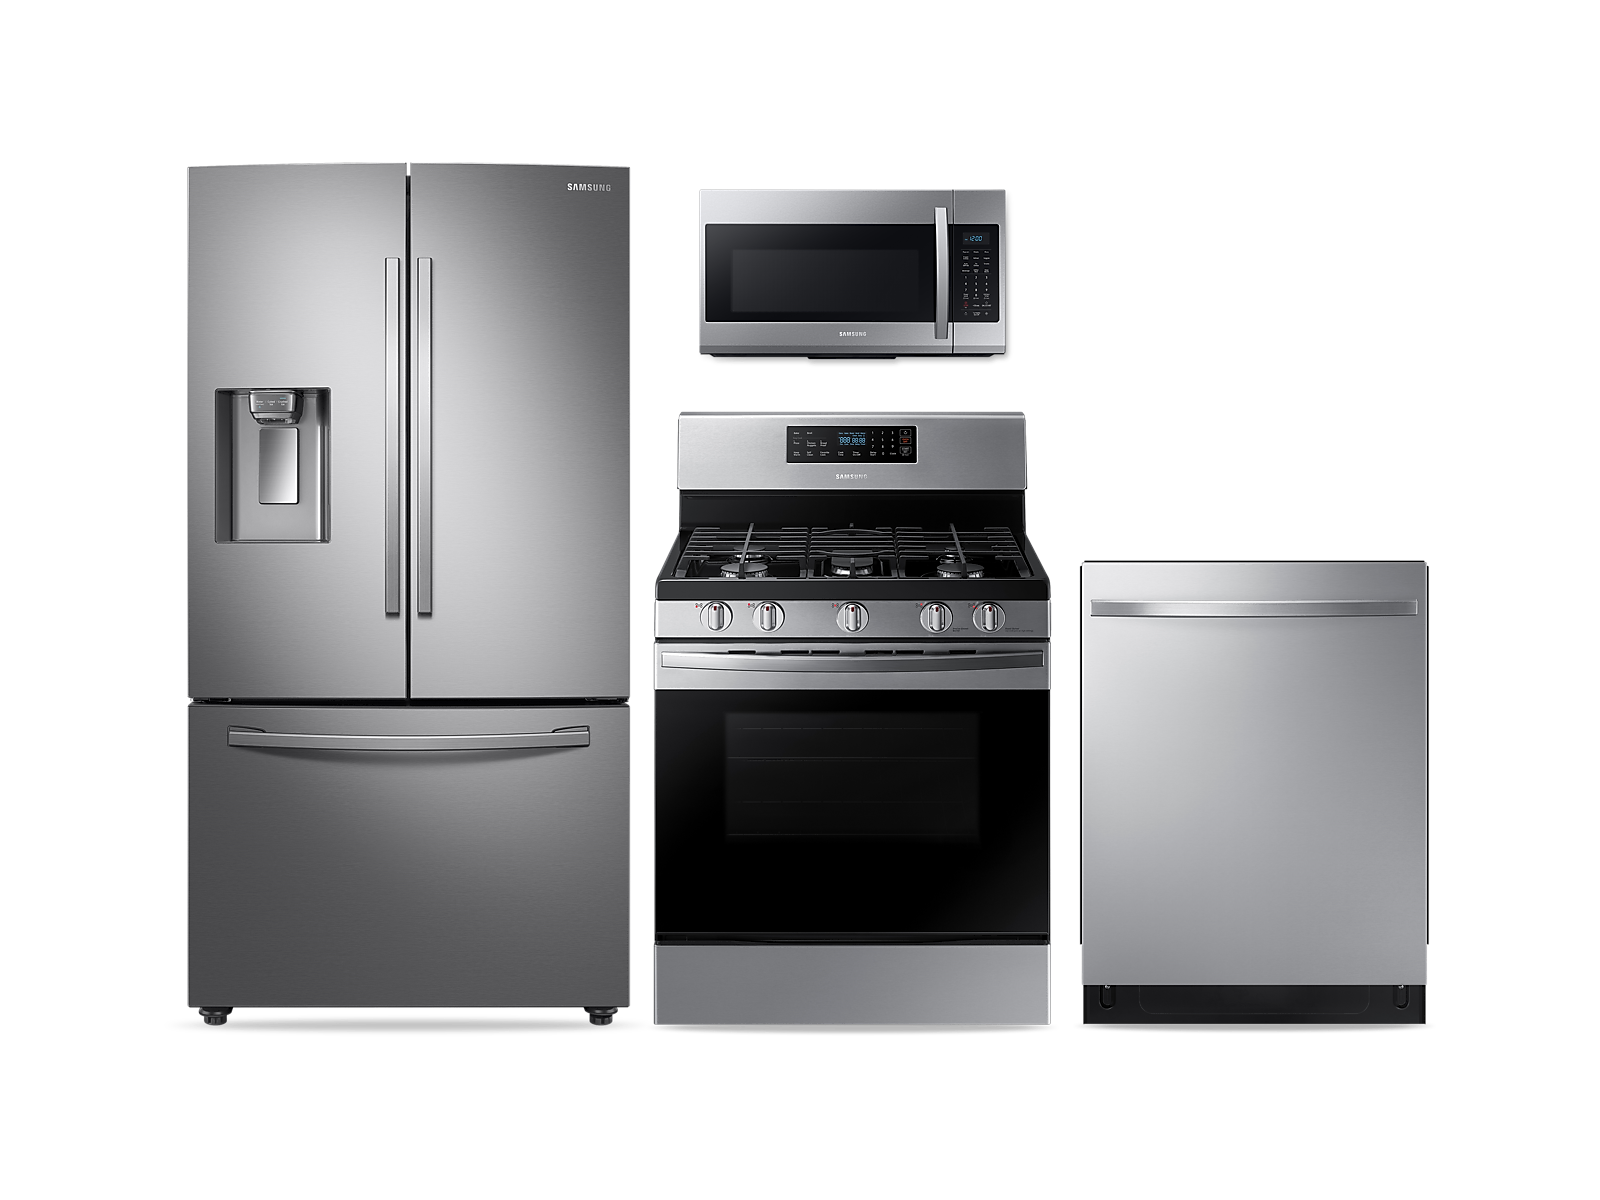 Samsung coupon: Samsung Large Capacity 3-door Refrigerator + Gas Range + StormWash Dishwasher + Microwave Kitchen Package in Stainless Steel(BNDL-1572442239622)